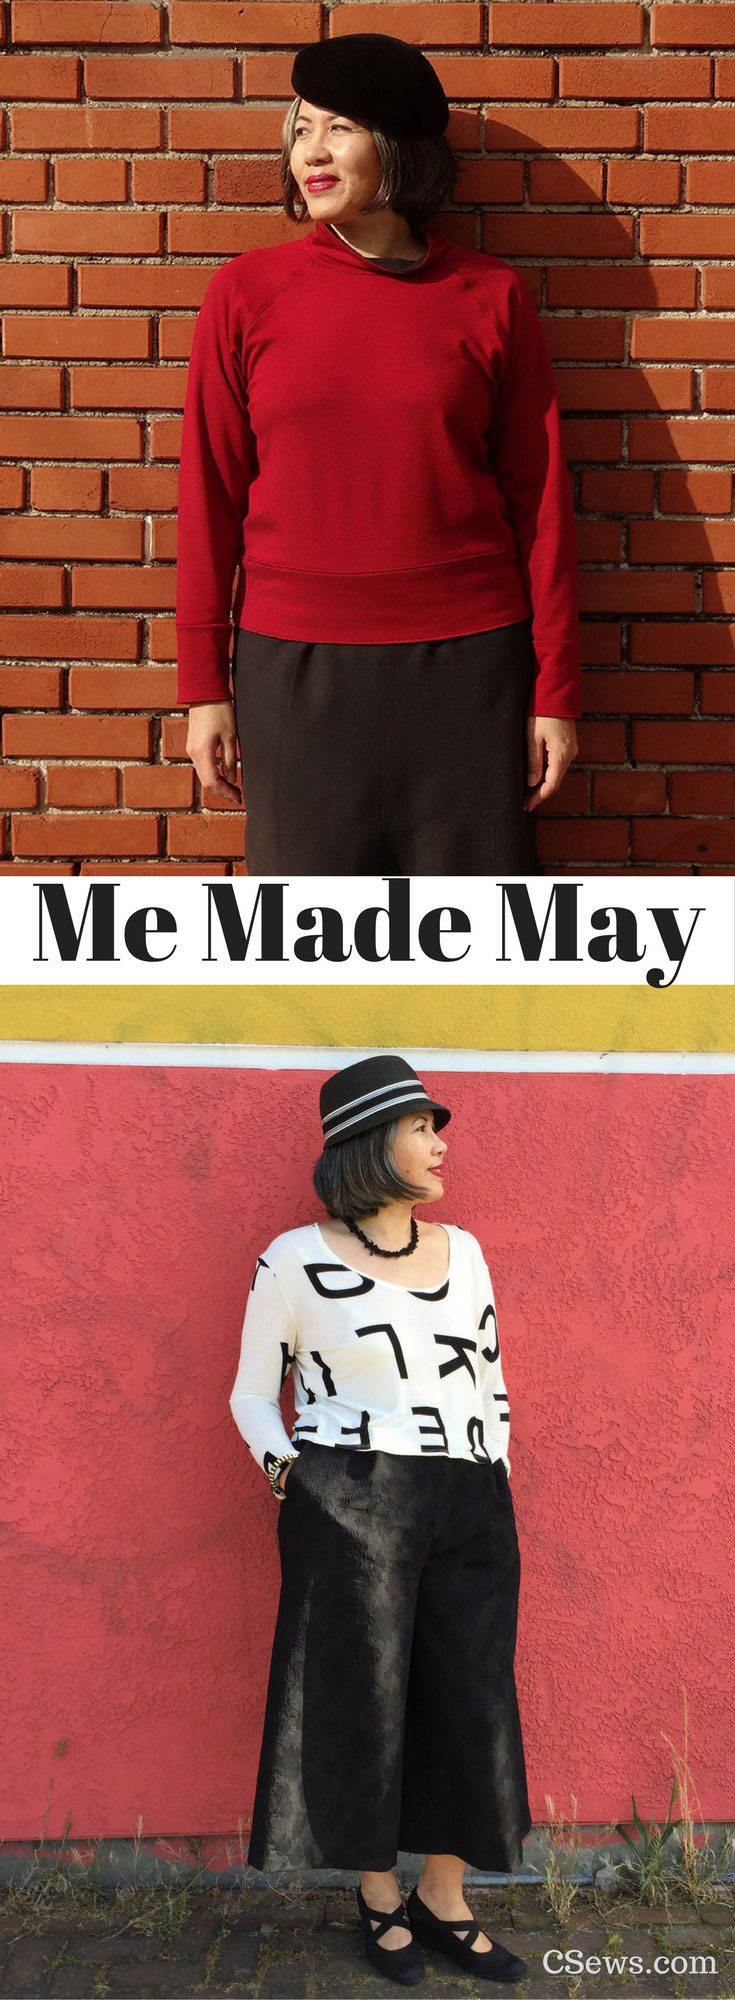 Me Made May - Toaster Sweater (Sew House Seven sewing pattern), Mimosa Culottes (Named Clothing sewing pattern) - CSews.com